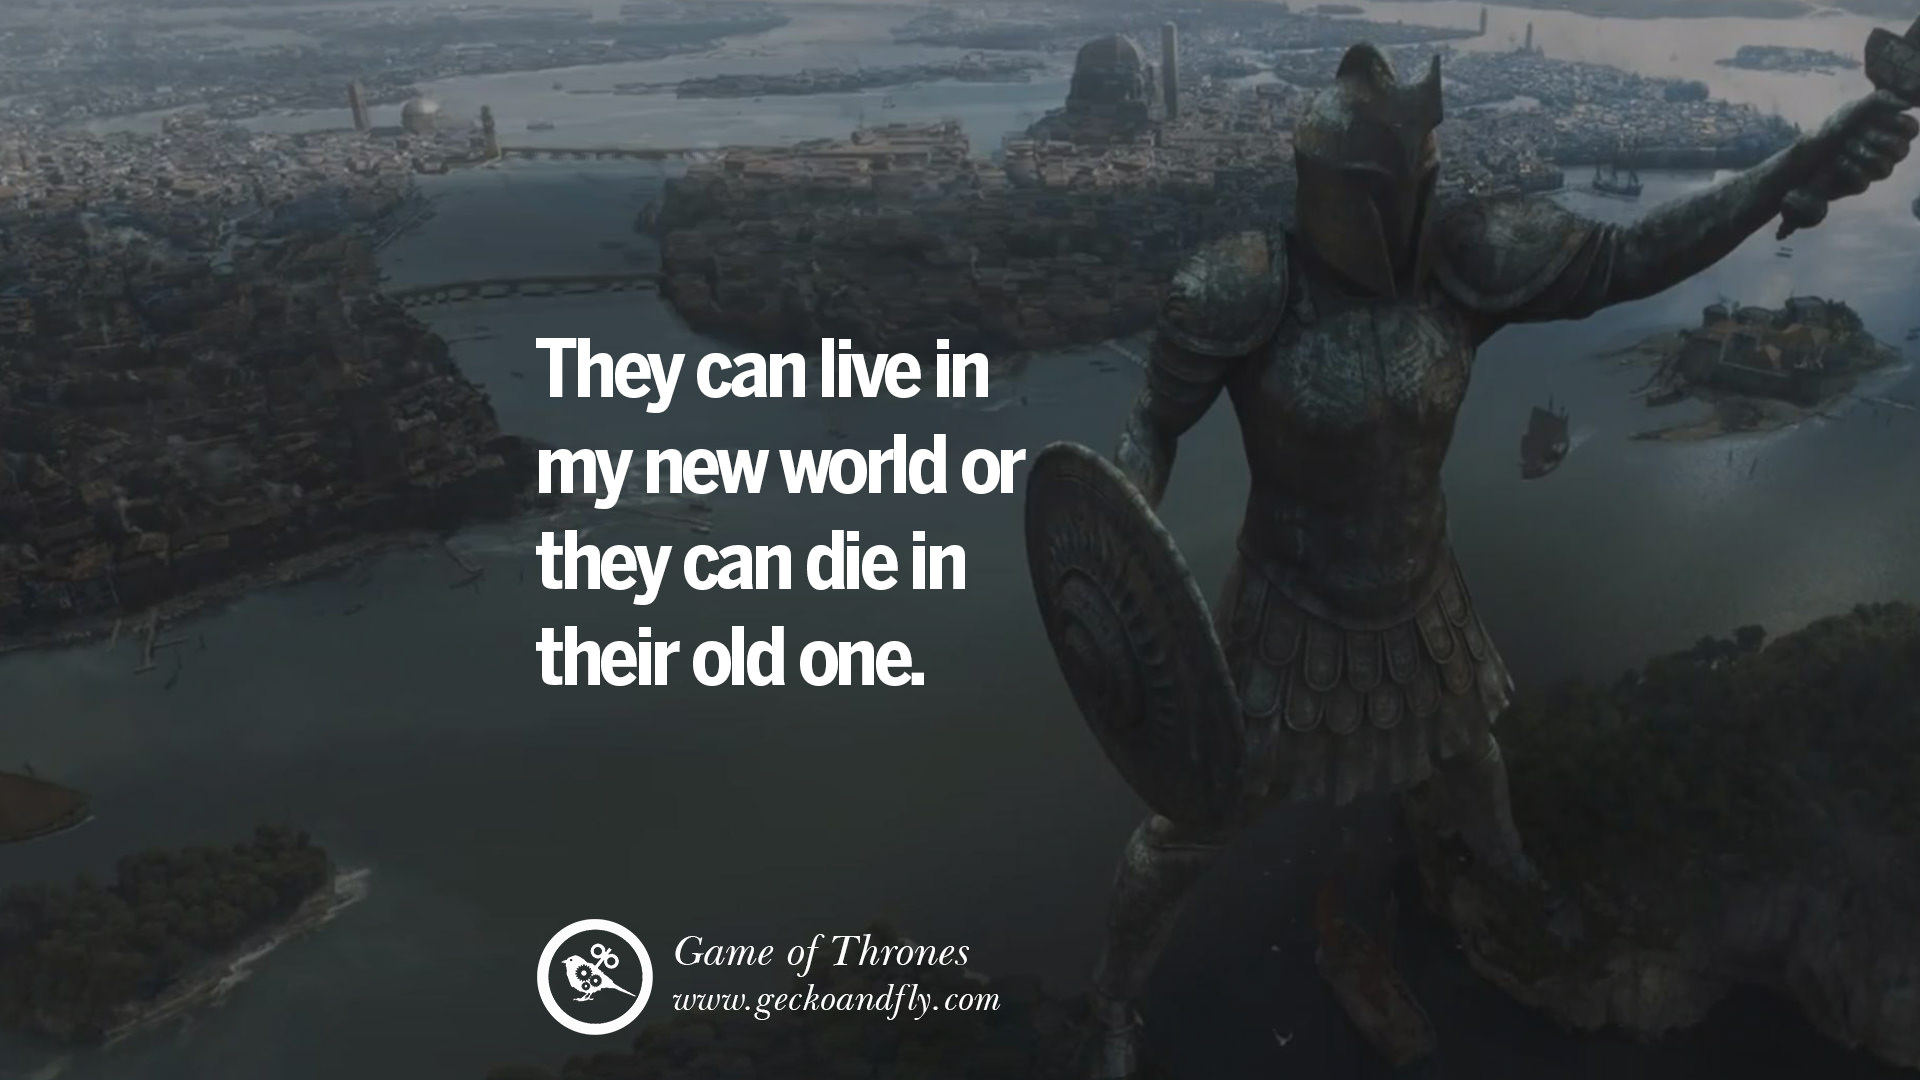 Dying Quotes For Loved Ones 15 Memorable Game Of Thrones Quotesgeorge  Martin On Love